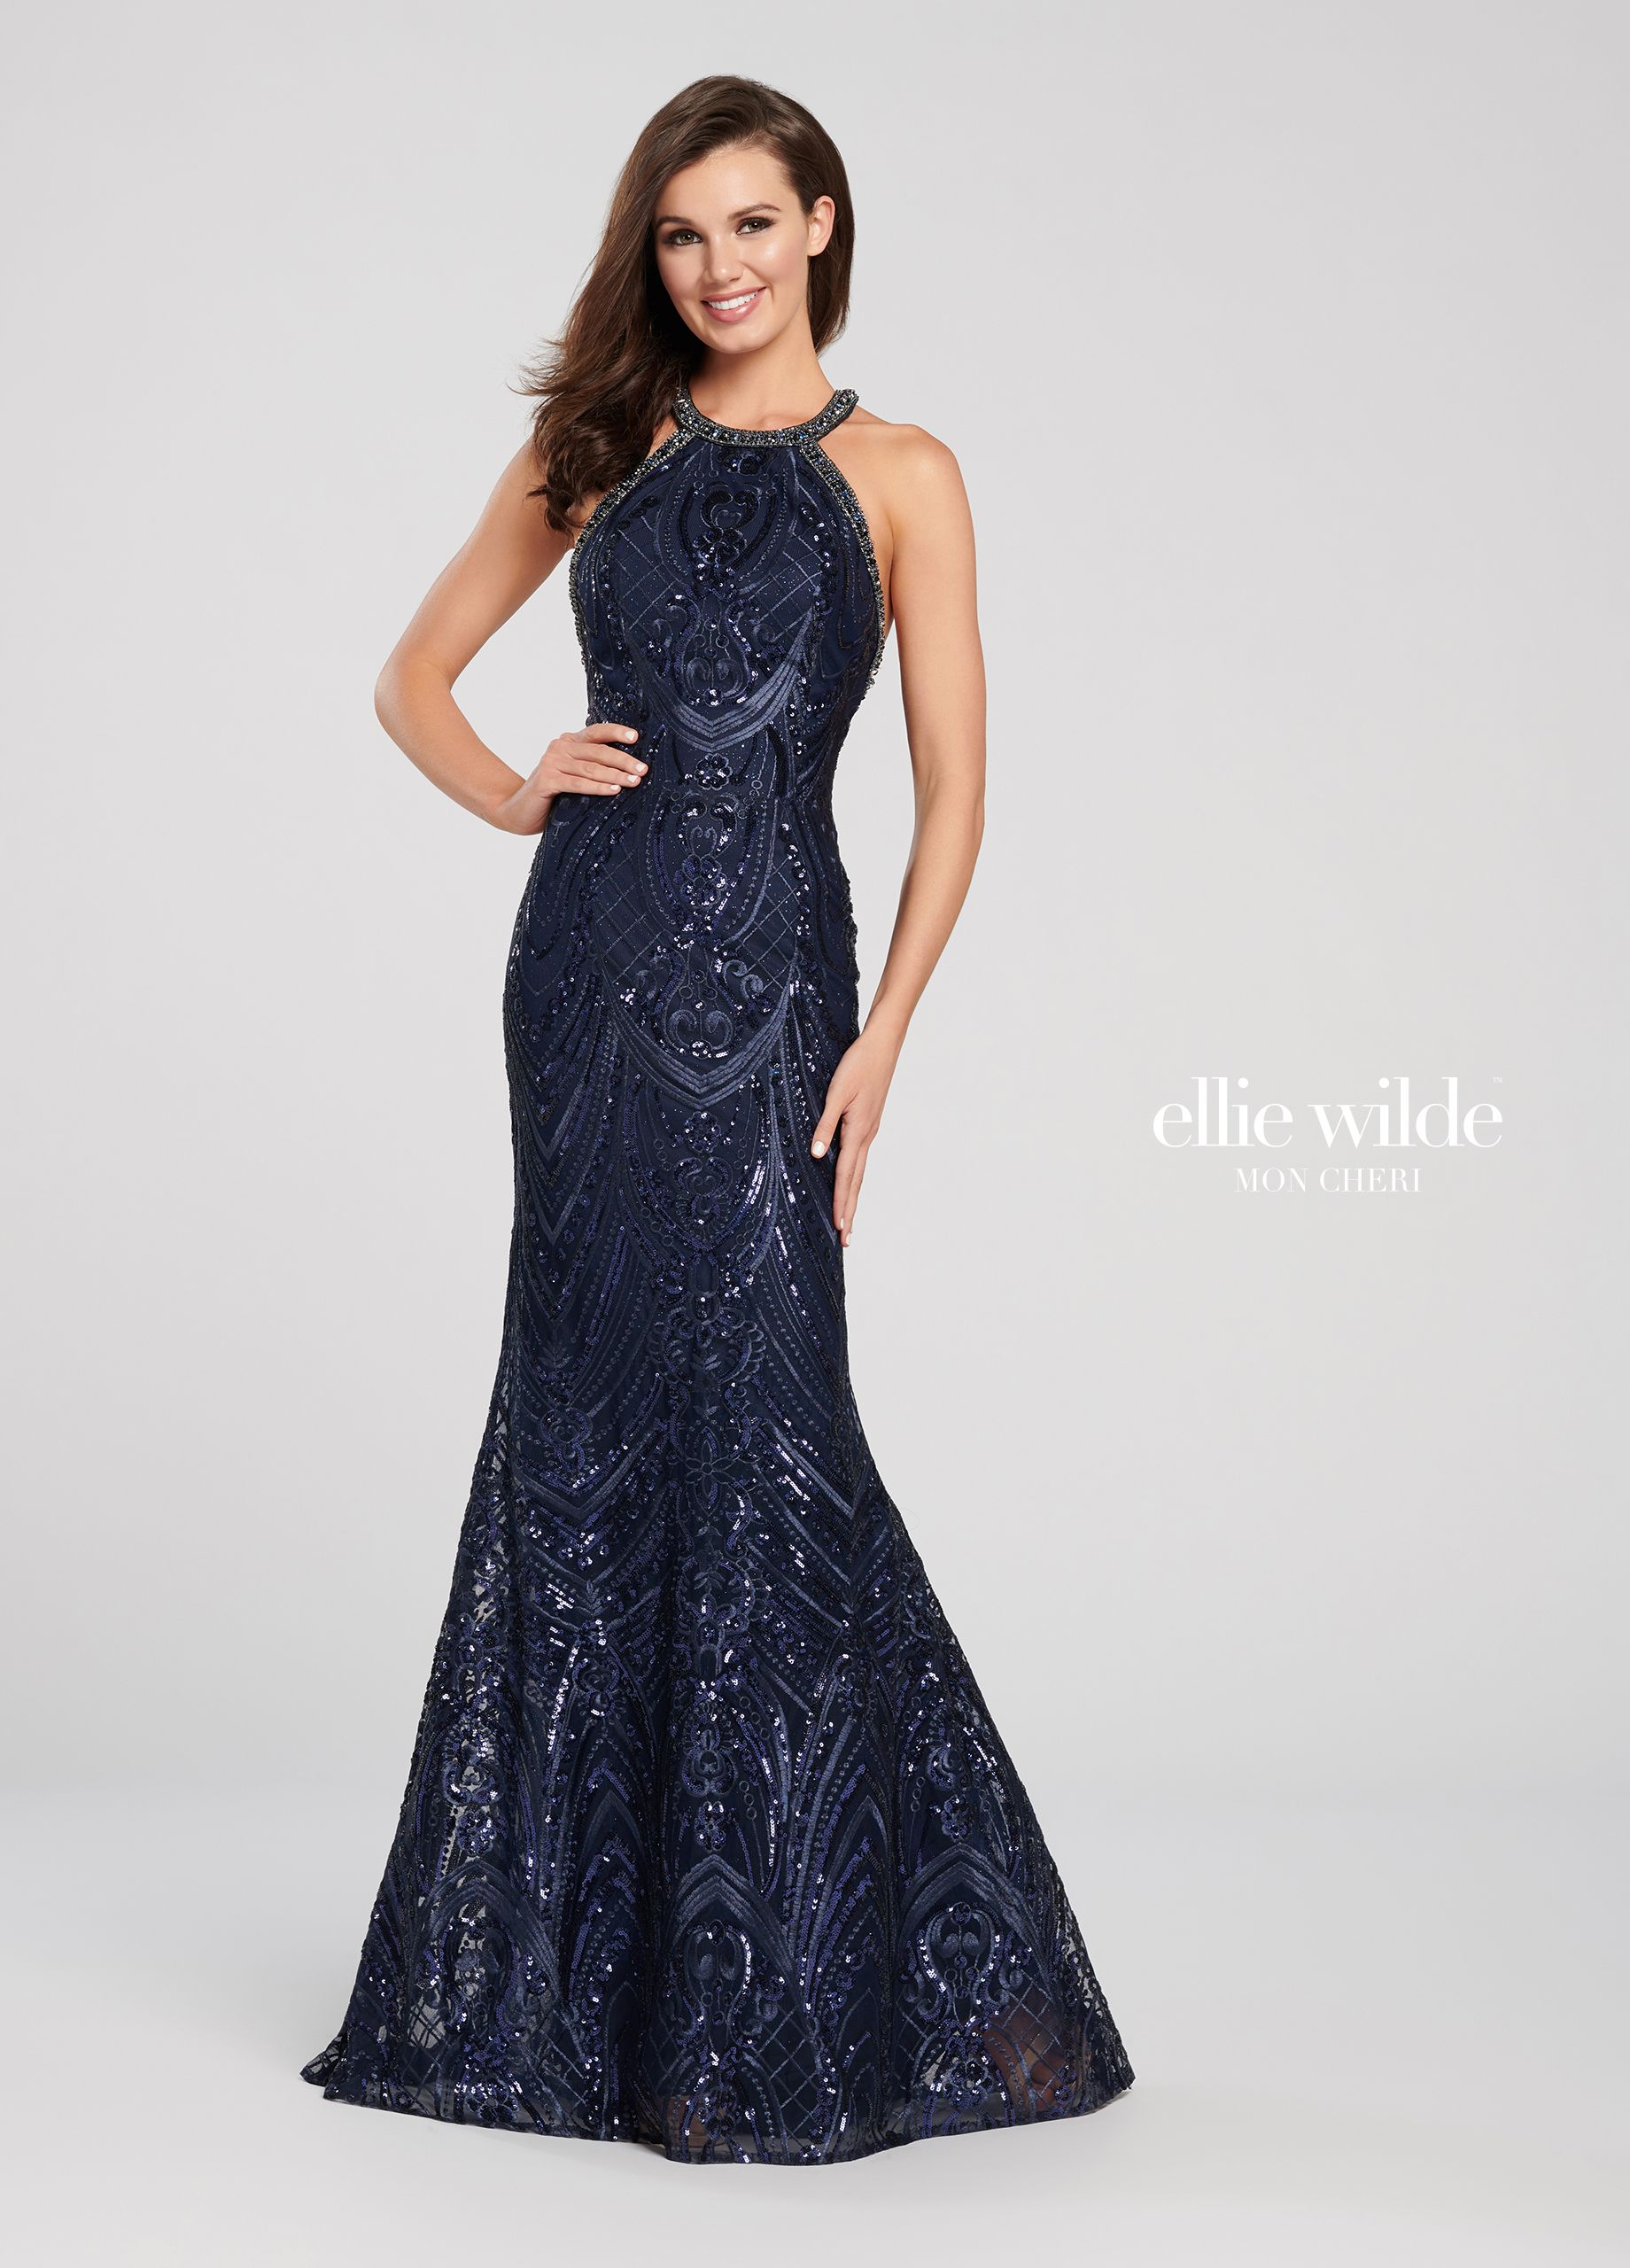 674c3b387d64 Allover embroidered sequin lace fit flare prom dress ew119109 – Artofit